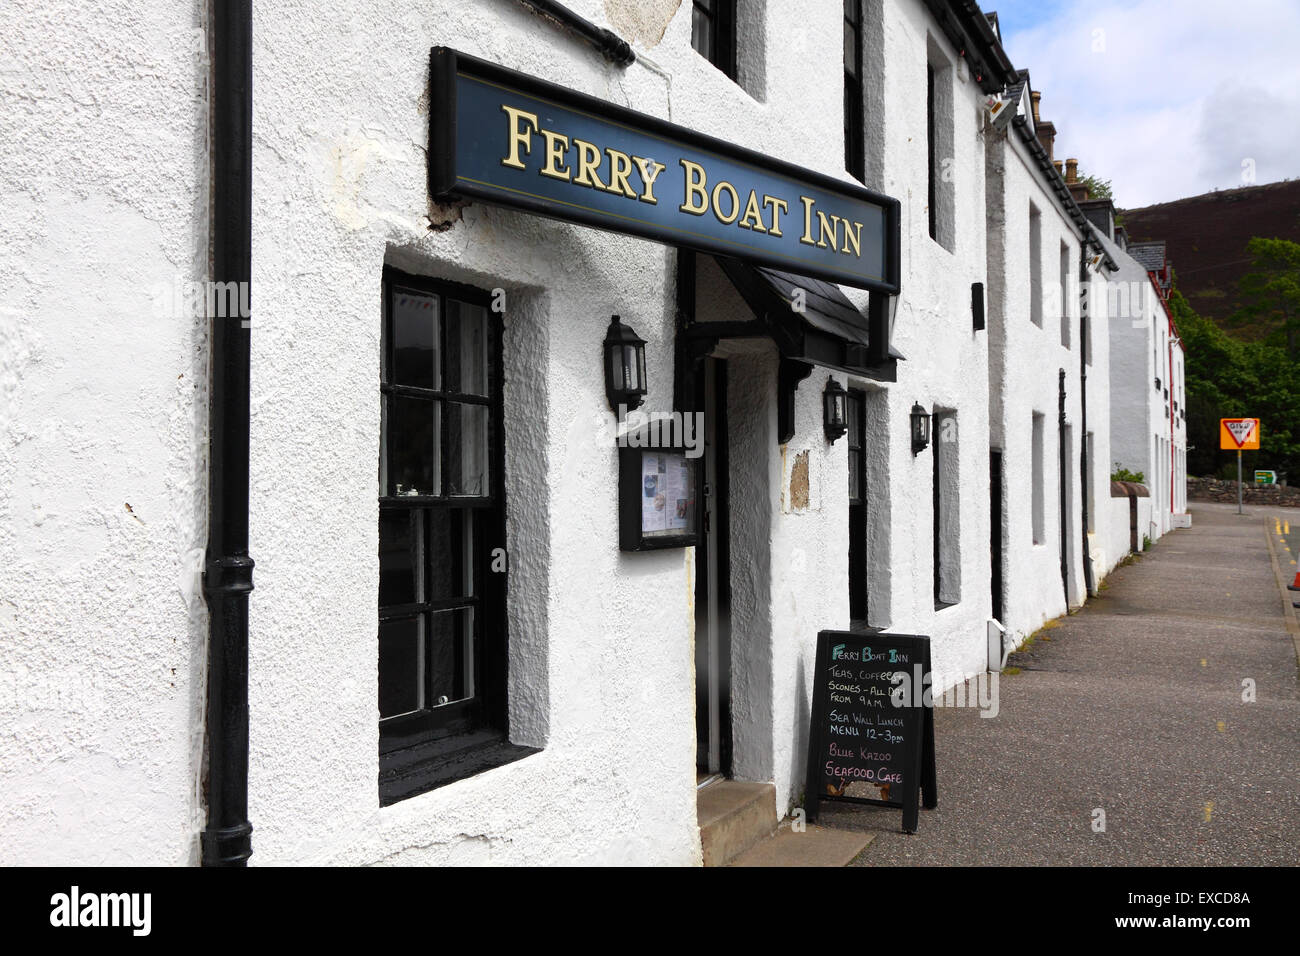 The Ferry Boat Inn in Ullapool, Scotland, UK - Stock Image